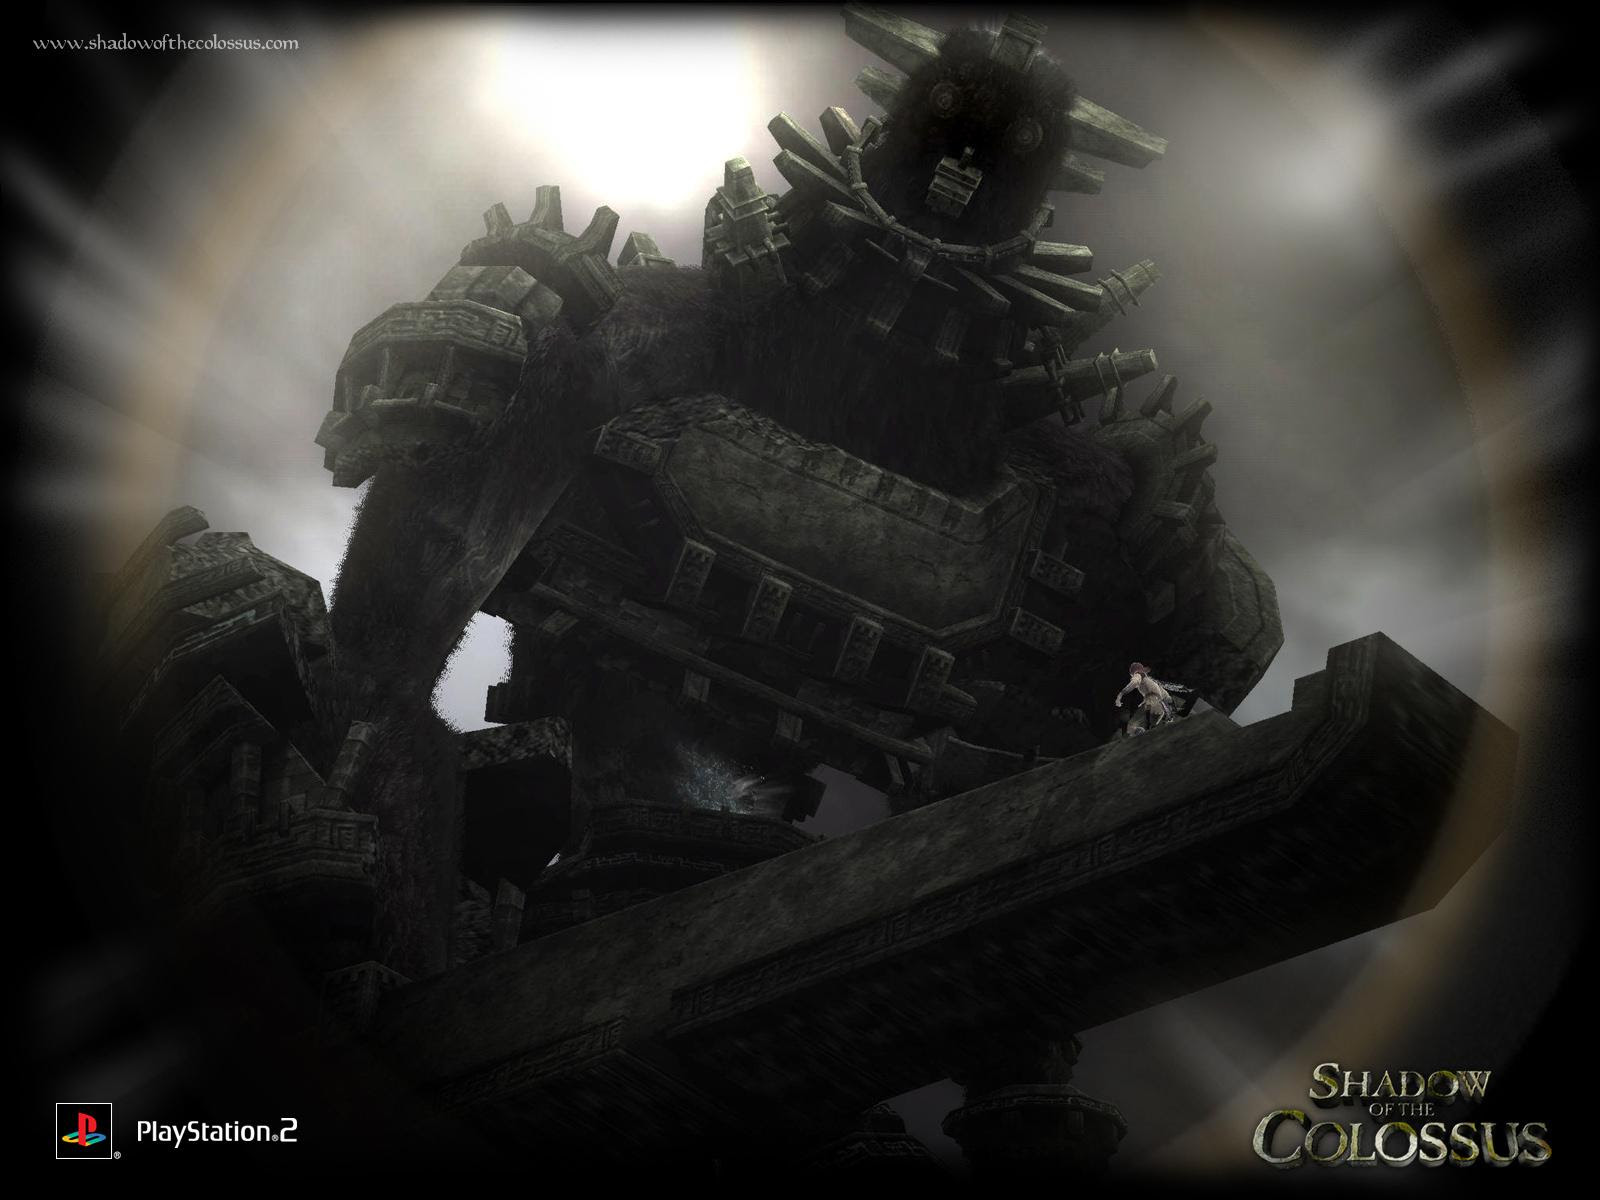 Knight Colossus Shadow Of The Colossus Wallpaper 32794224 Fanpop